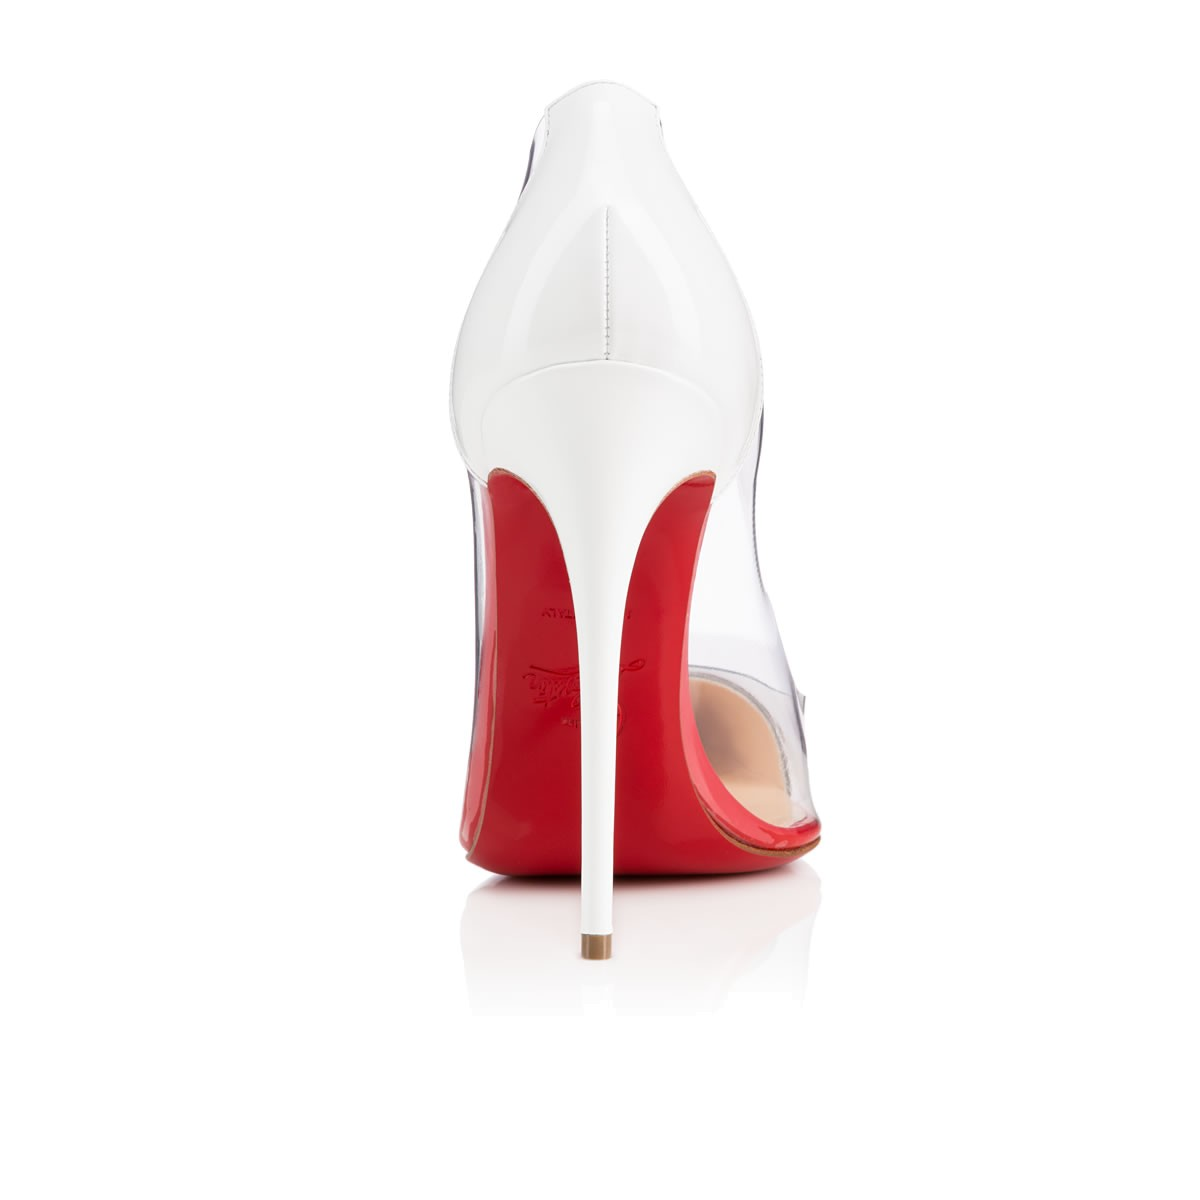 boutin shoes - CHRISTIAN LOUBOUTIN DEBOUT 120MM PVC BLACK / WHITE PATENT LEATHER ...